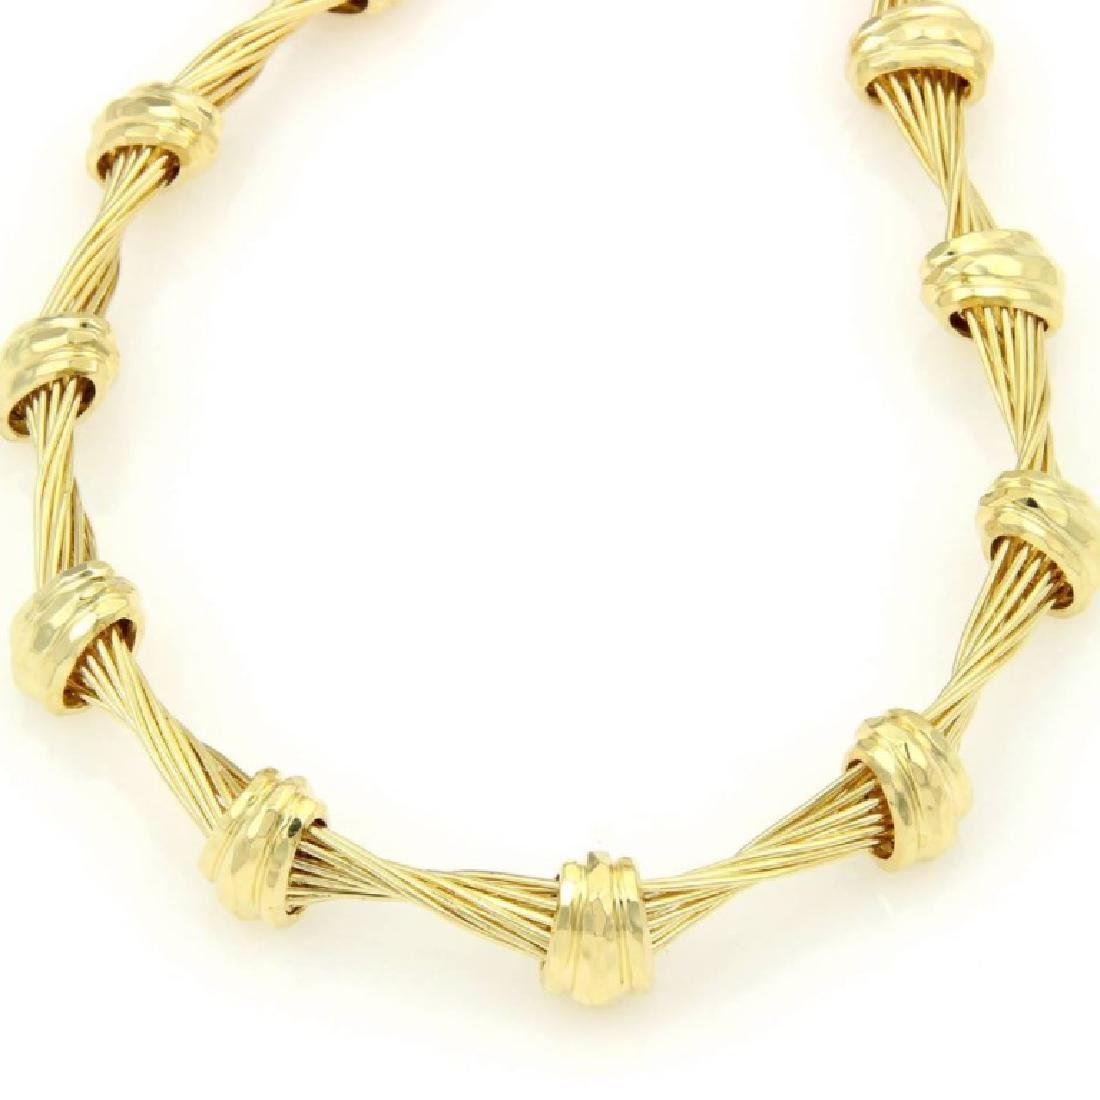 Henry Dunay Design 18K Yellow Gold Choker Necklace